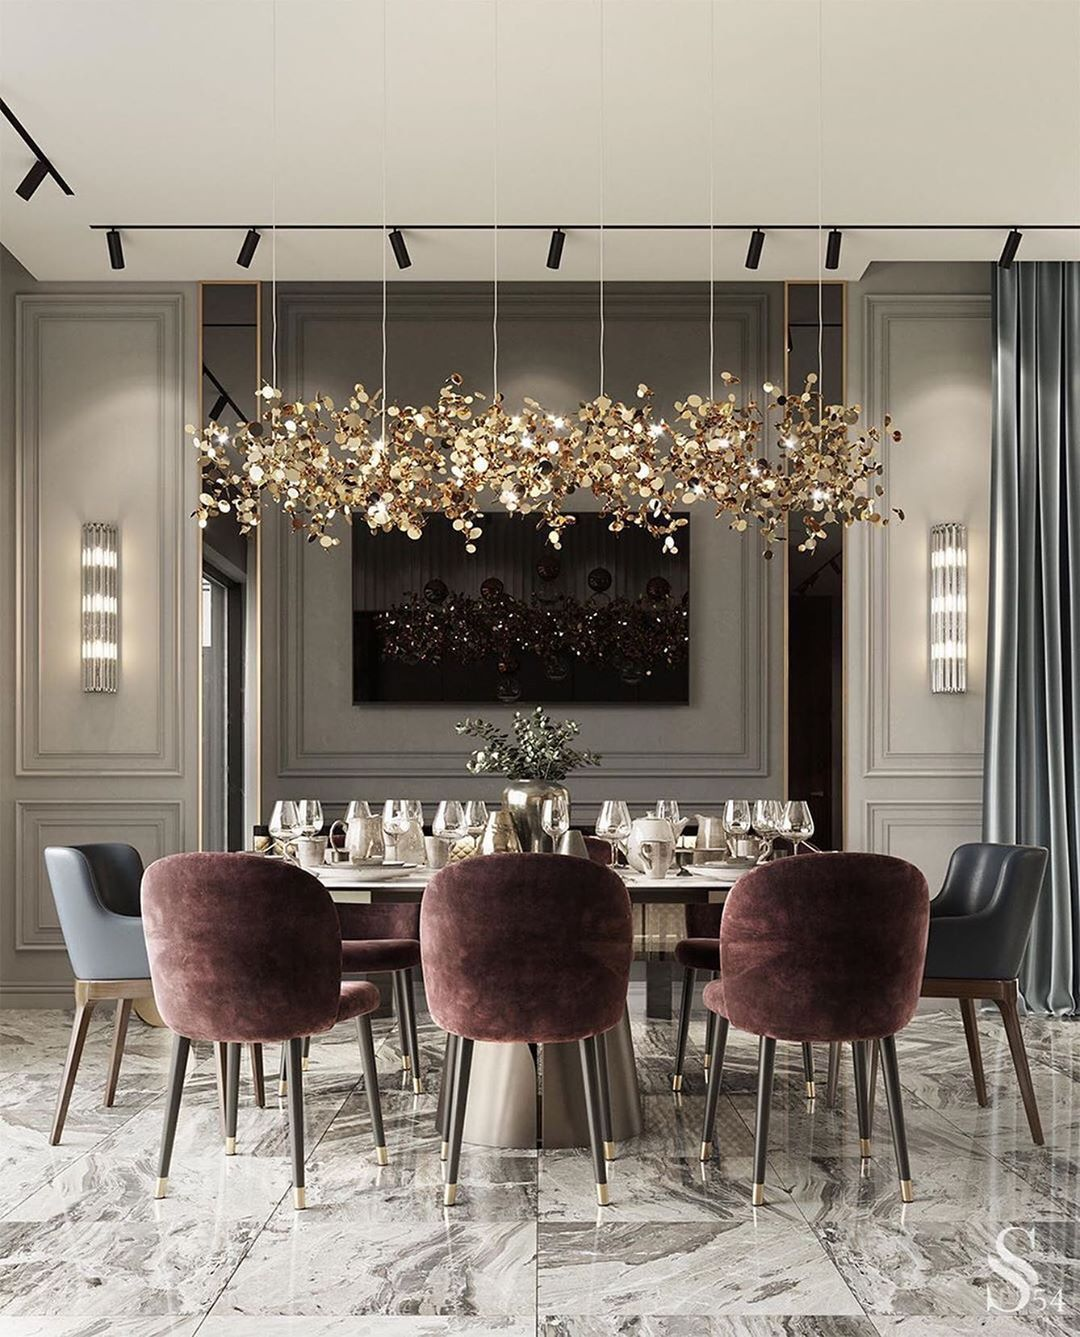 Luxury Interior By Aither On Instagram What A Classy Combination Of Modern Furniture W Luxury Dining Room Dining Room Design Modern Luxury Living Room Design